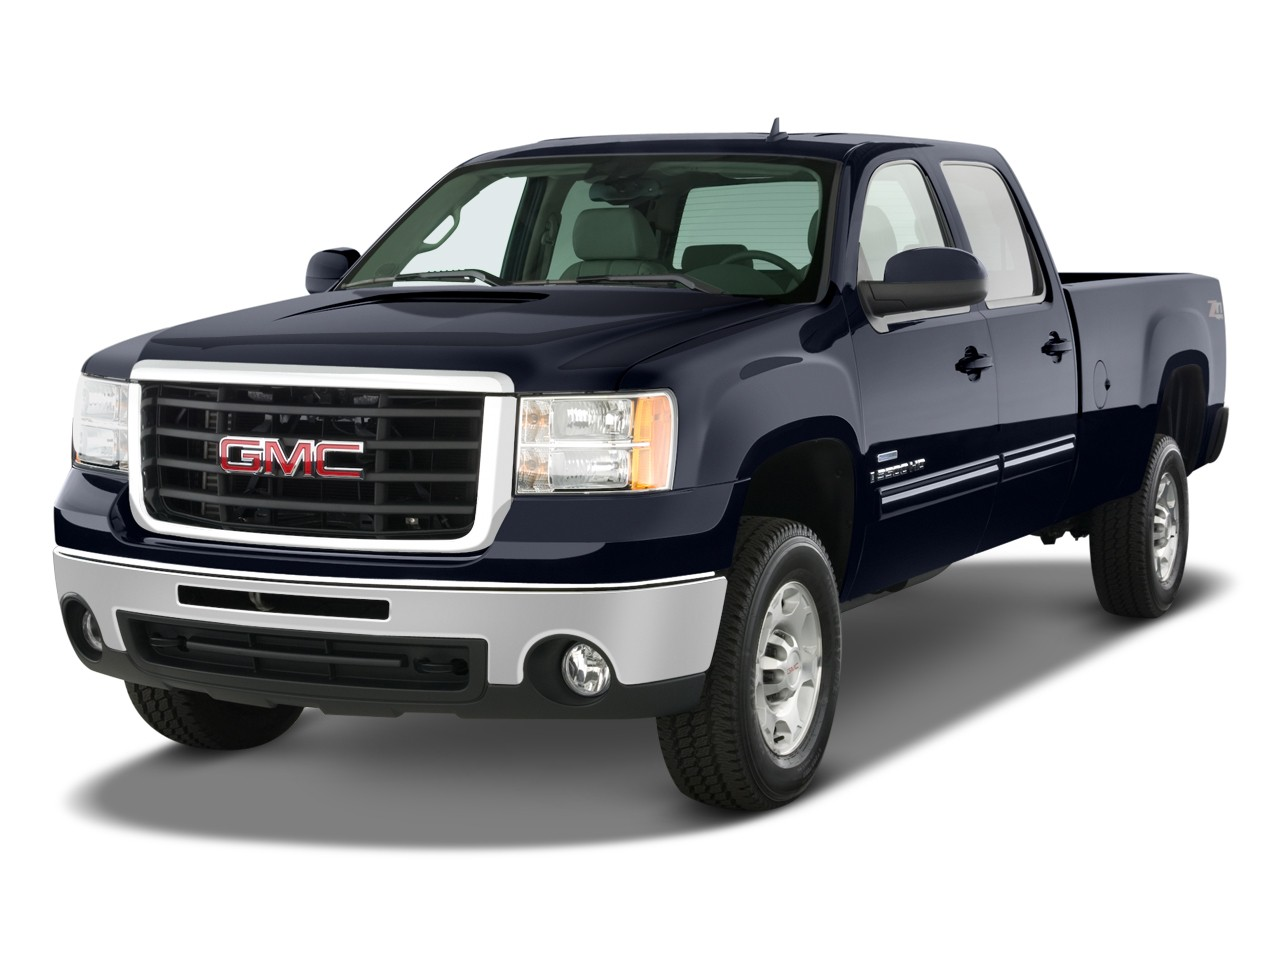 GMC Sierra 3500HD Crew Cab specs & photos - 2008, 2009 ...